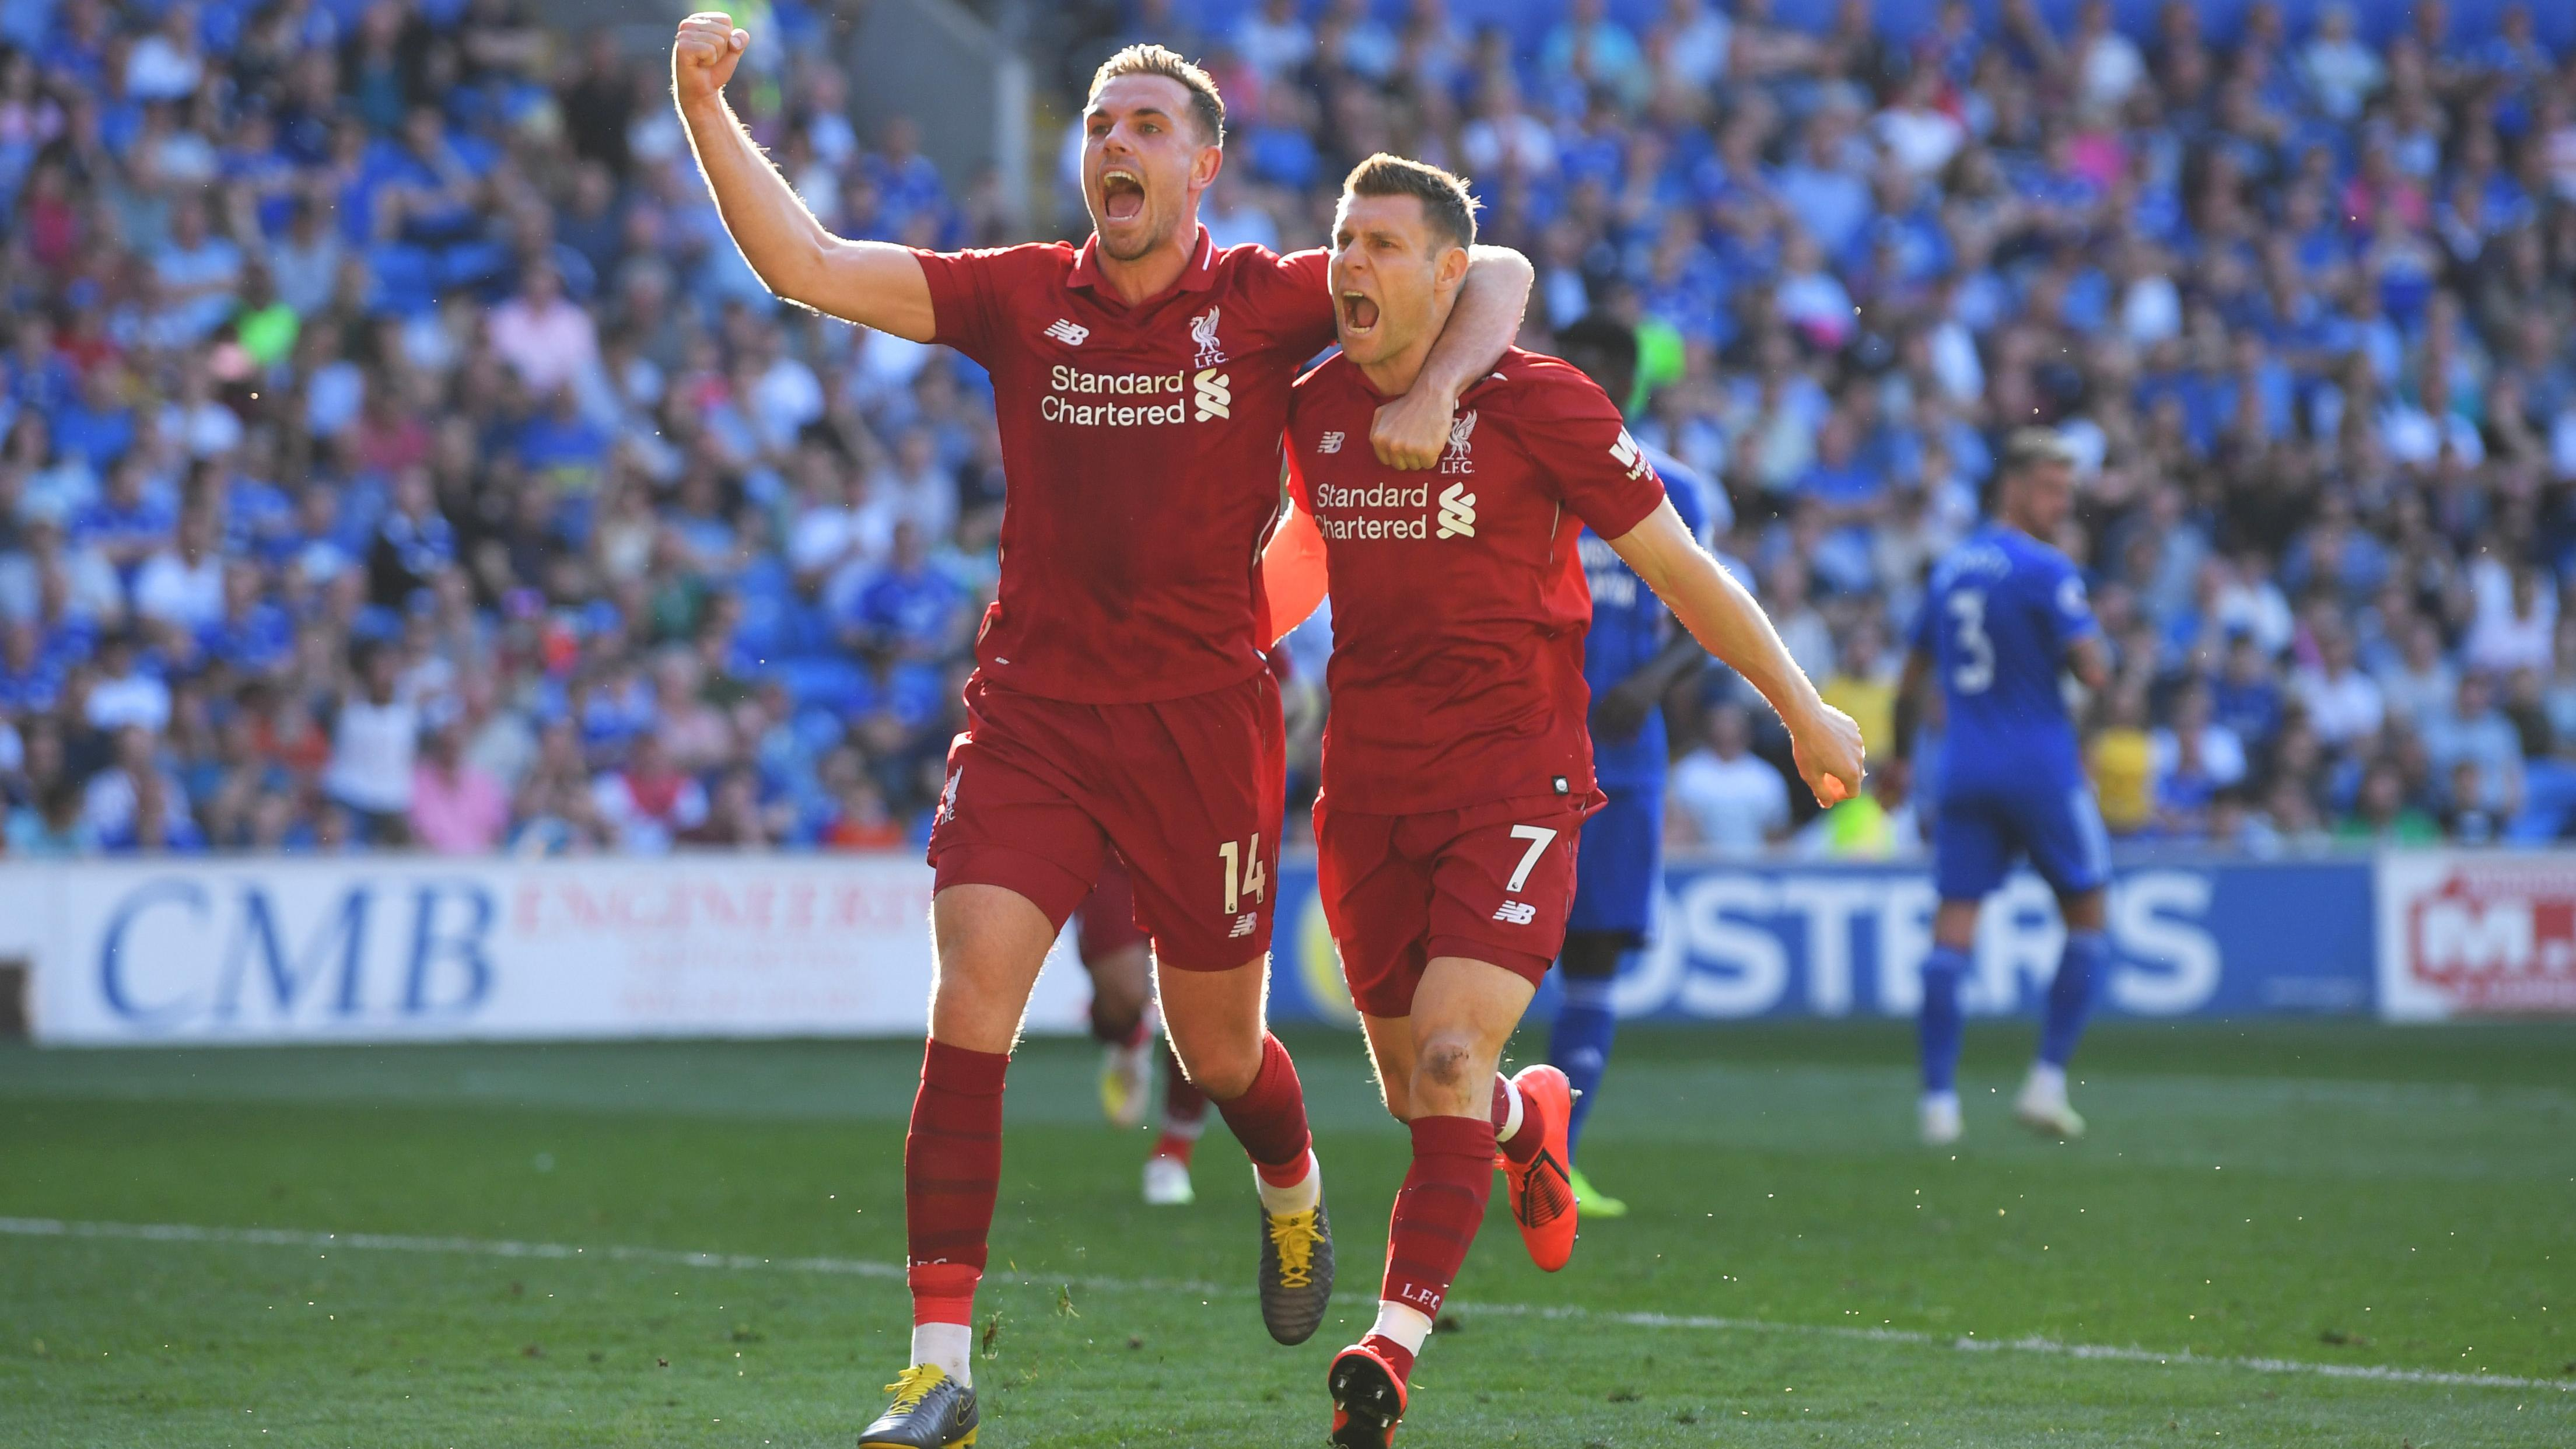 Milner's penalty kick doubles Liverpool's lead